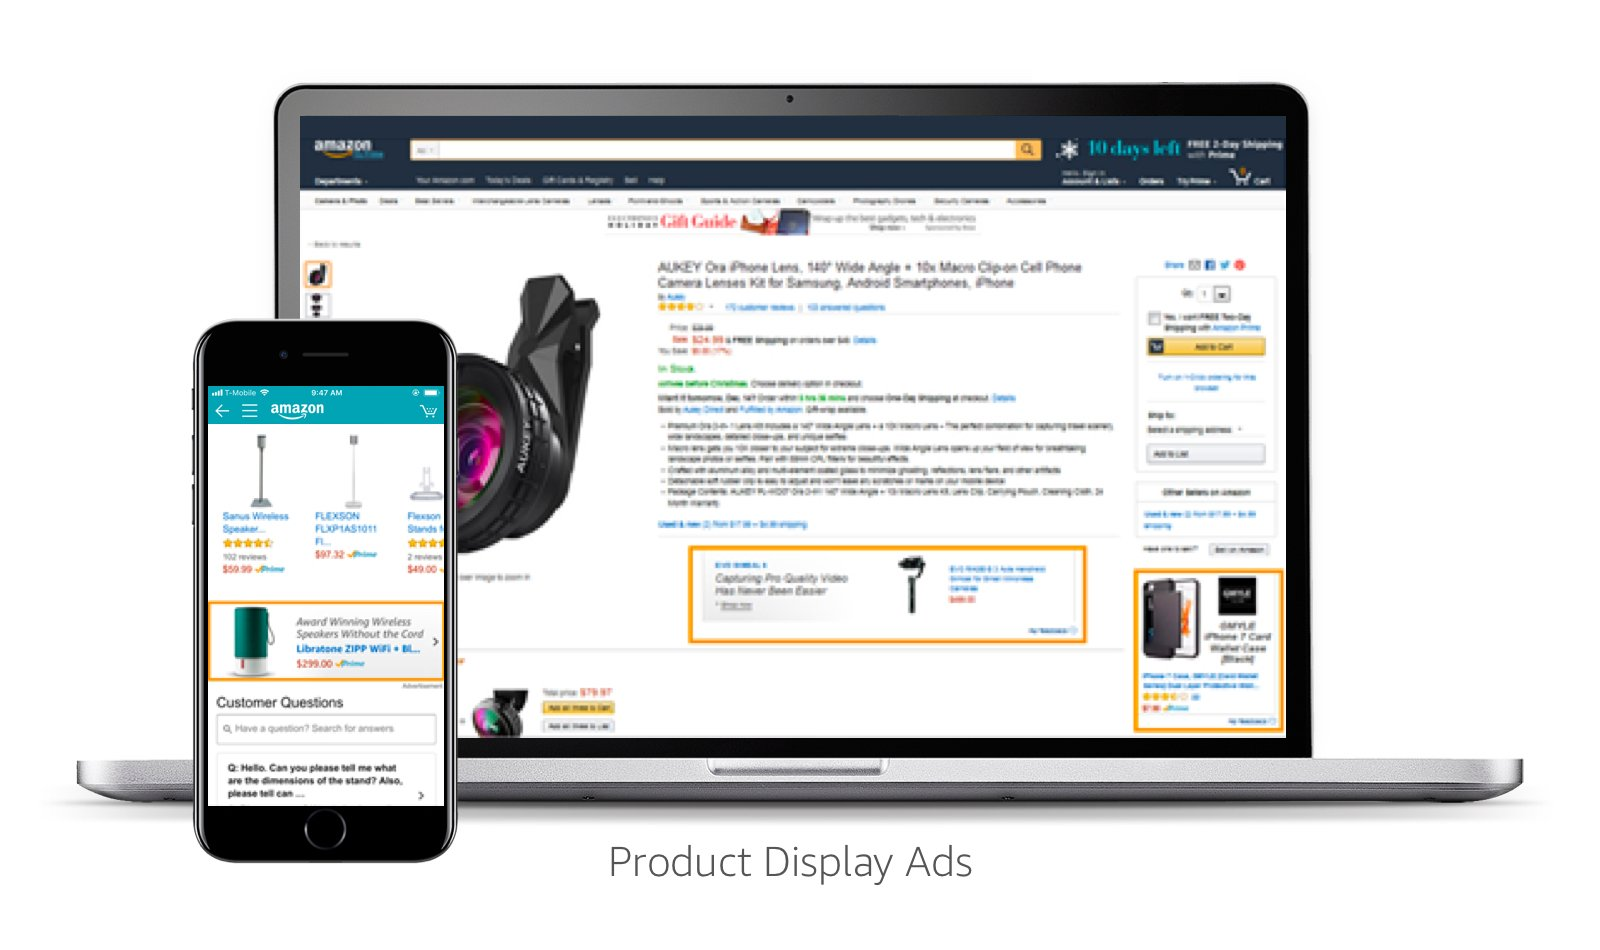 Product Display Ads